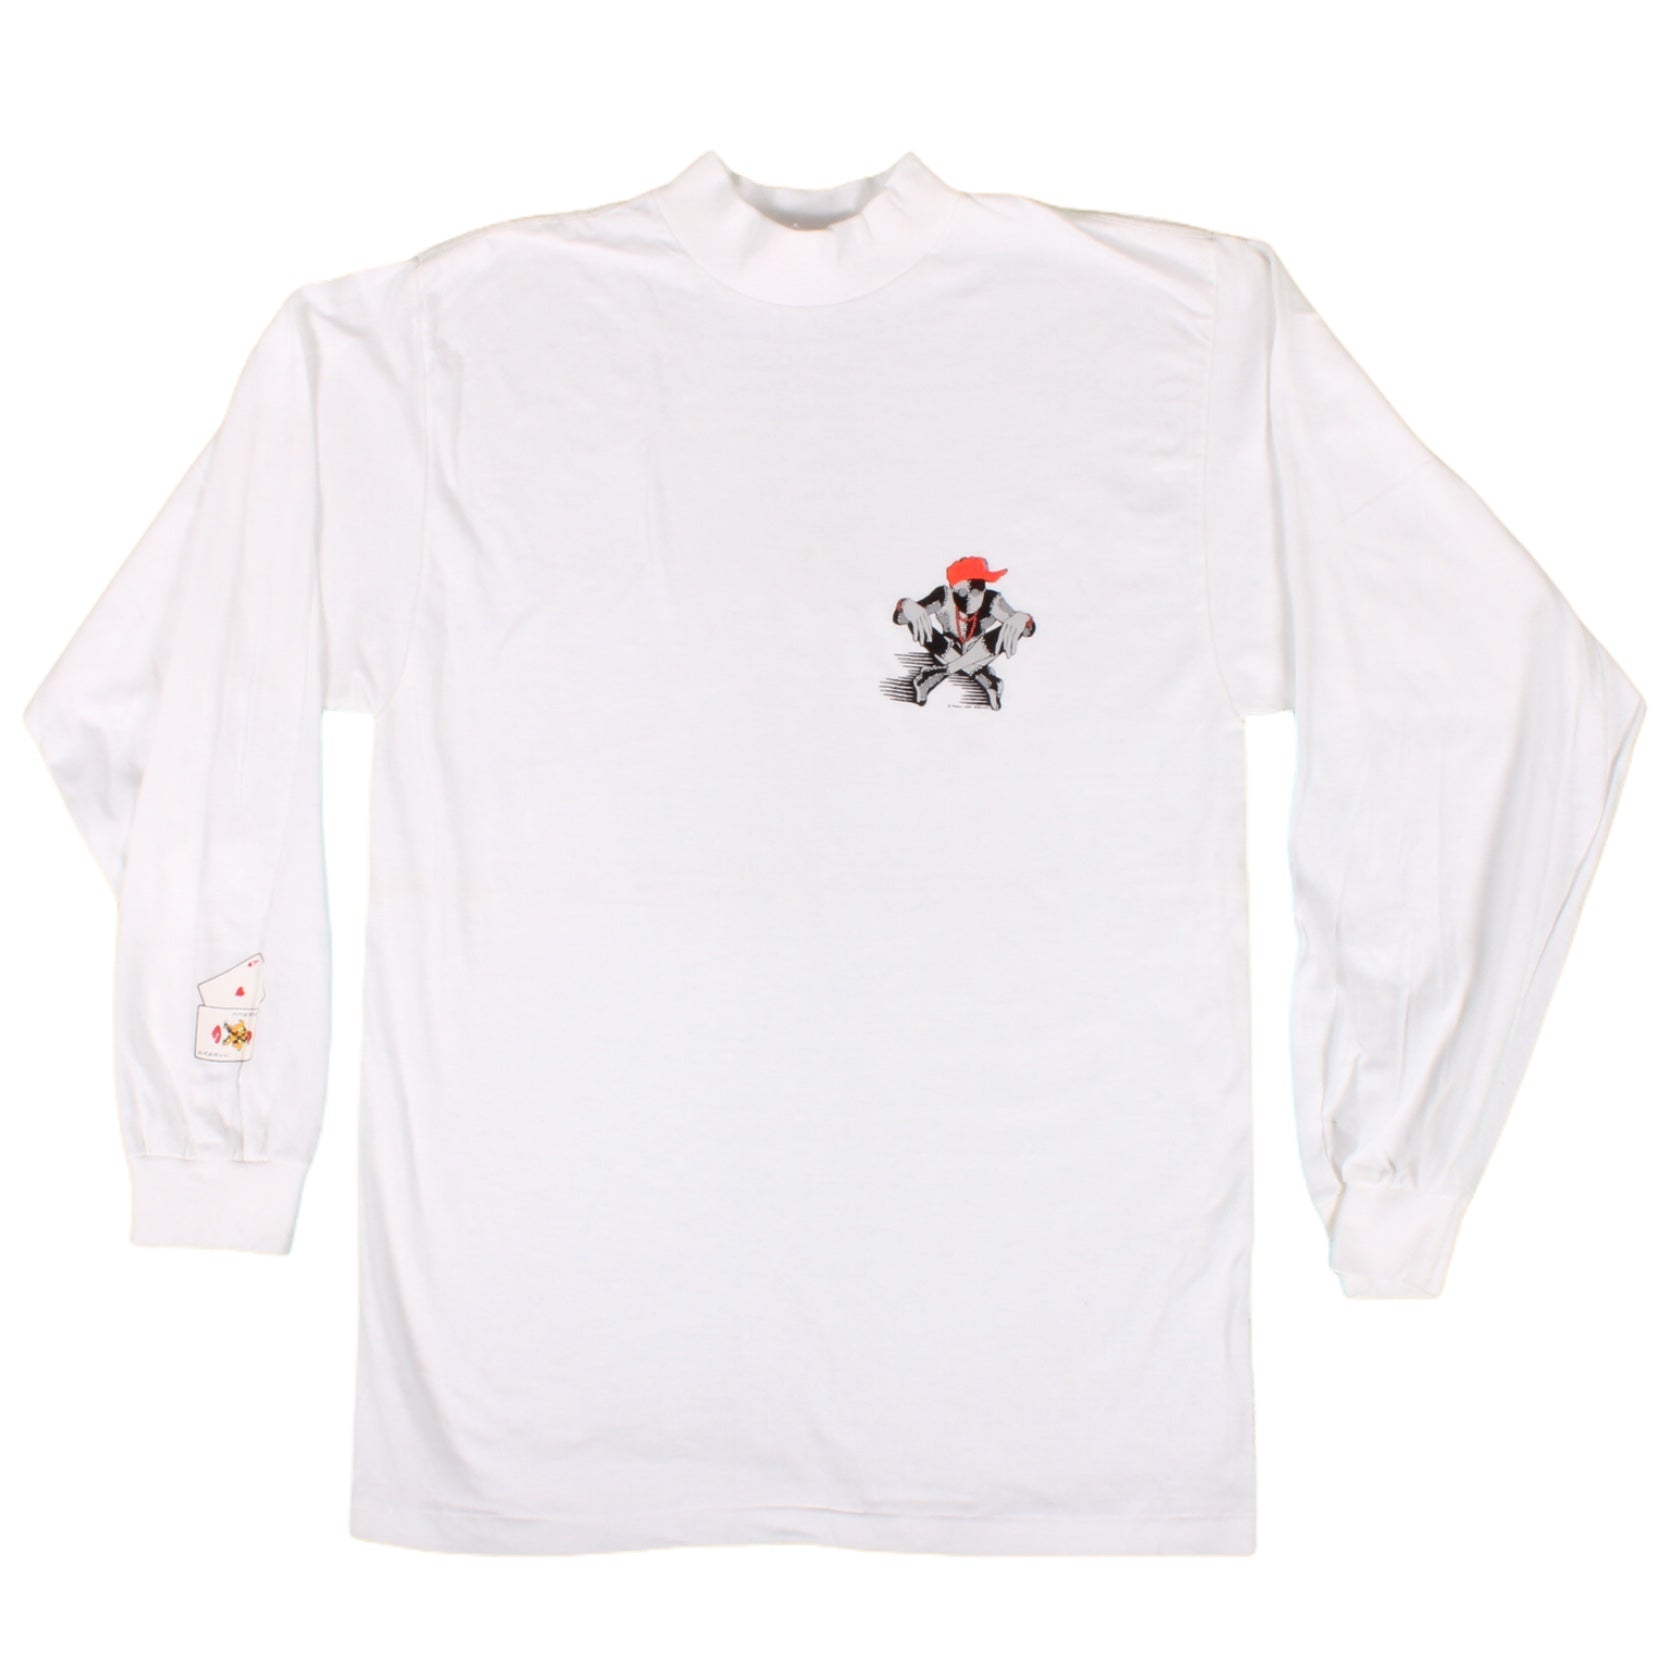 Overripe Powell Peralta Ray Barbee Mock Turtleneck Tee White Small (1989)